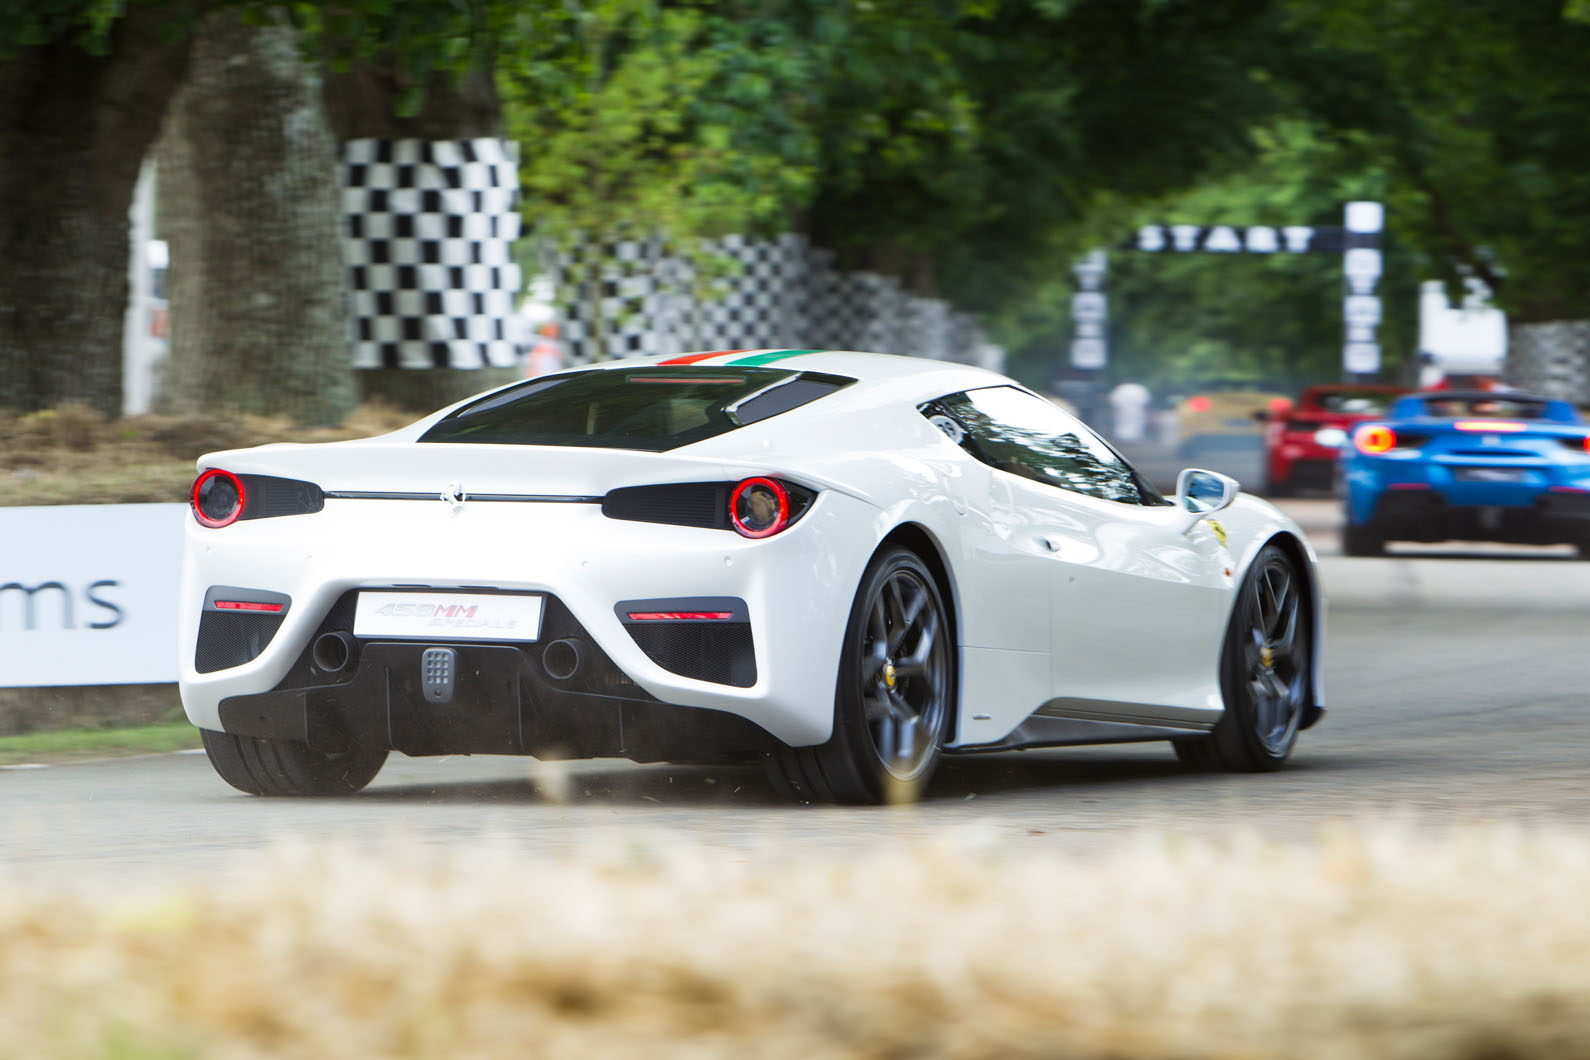 How to own a special edition Ferrari